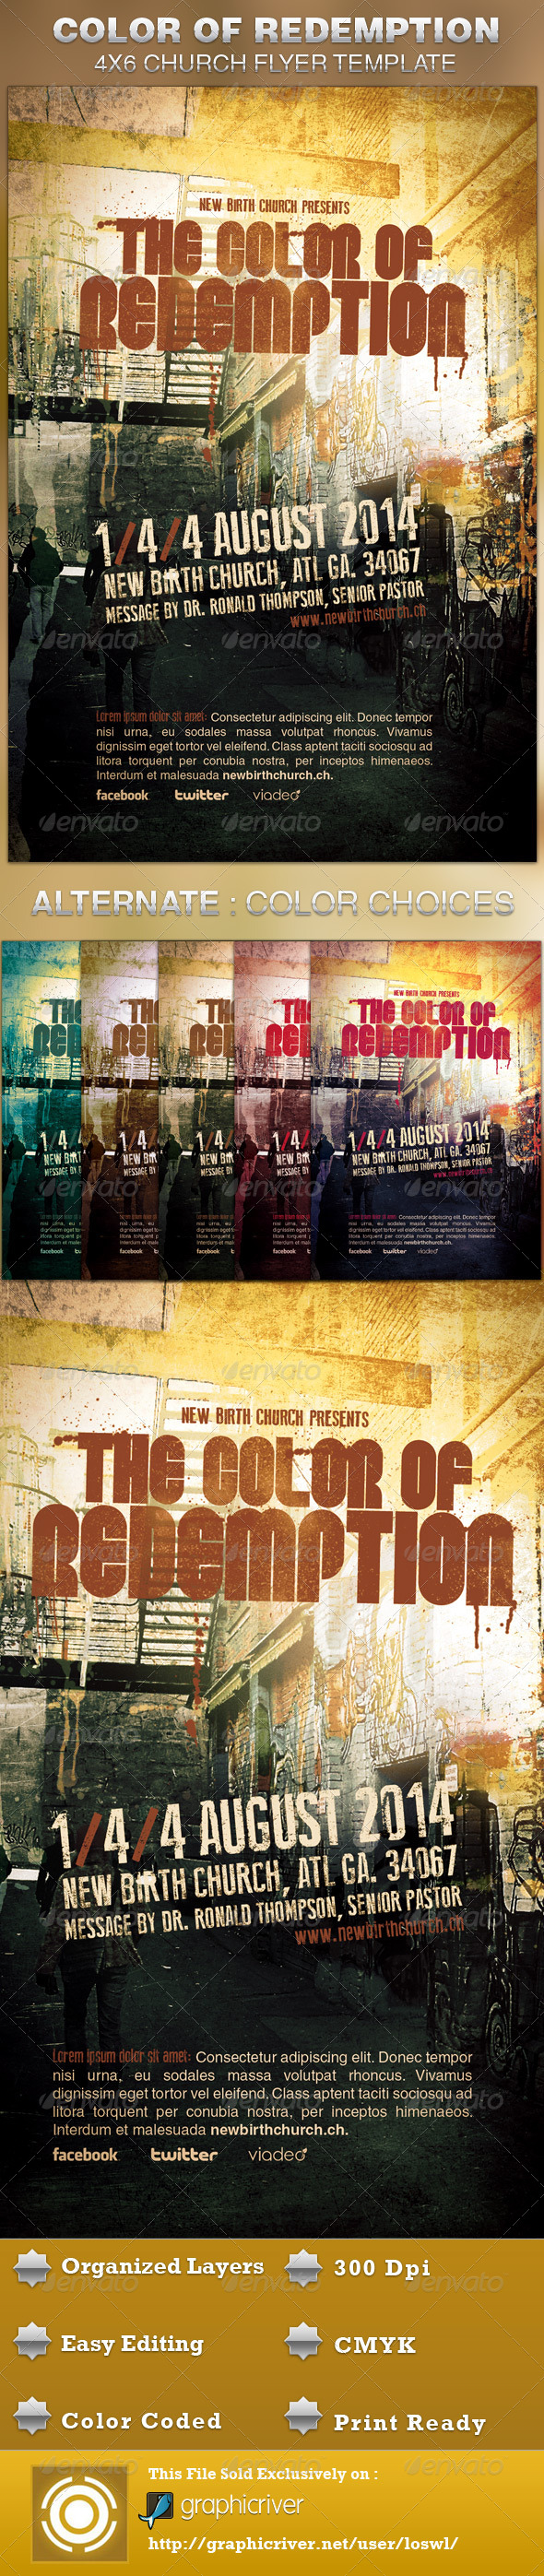 The Color of Redemption Church Flyer Template - Church Flyers